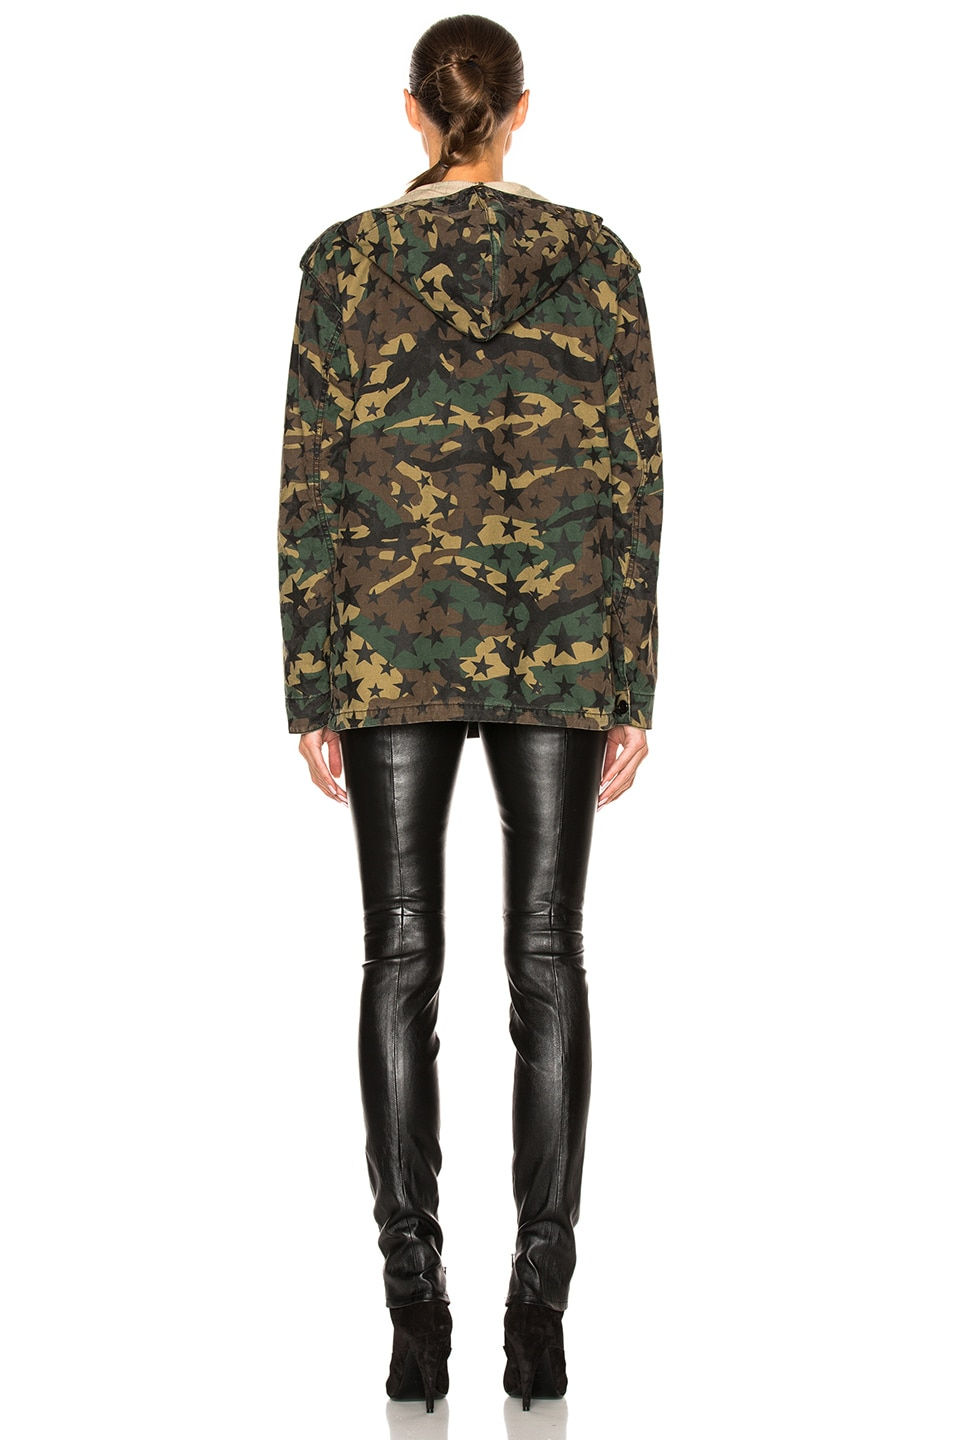 Image 5 of Saint Laurent Army Camouflage Jacket with Stars in Army Camouflage